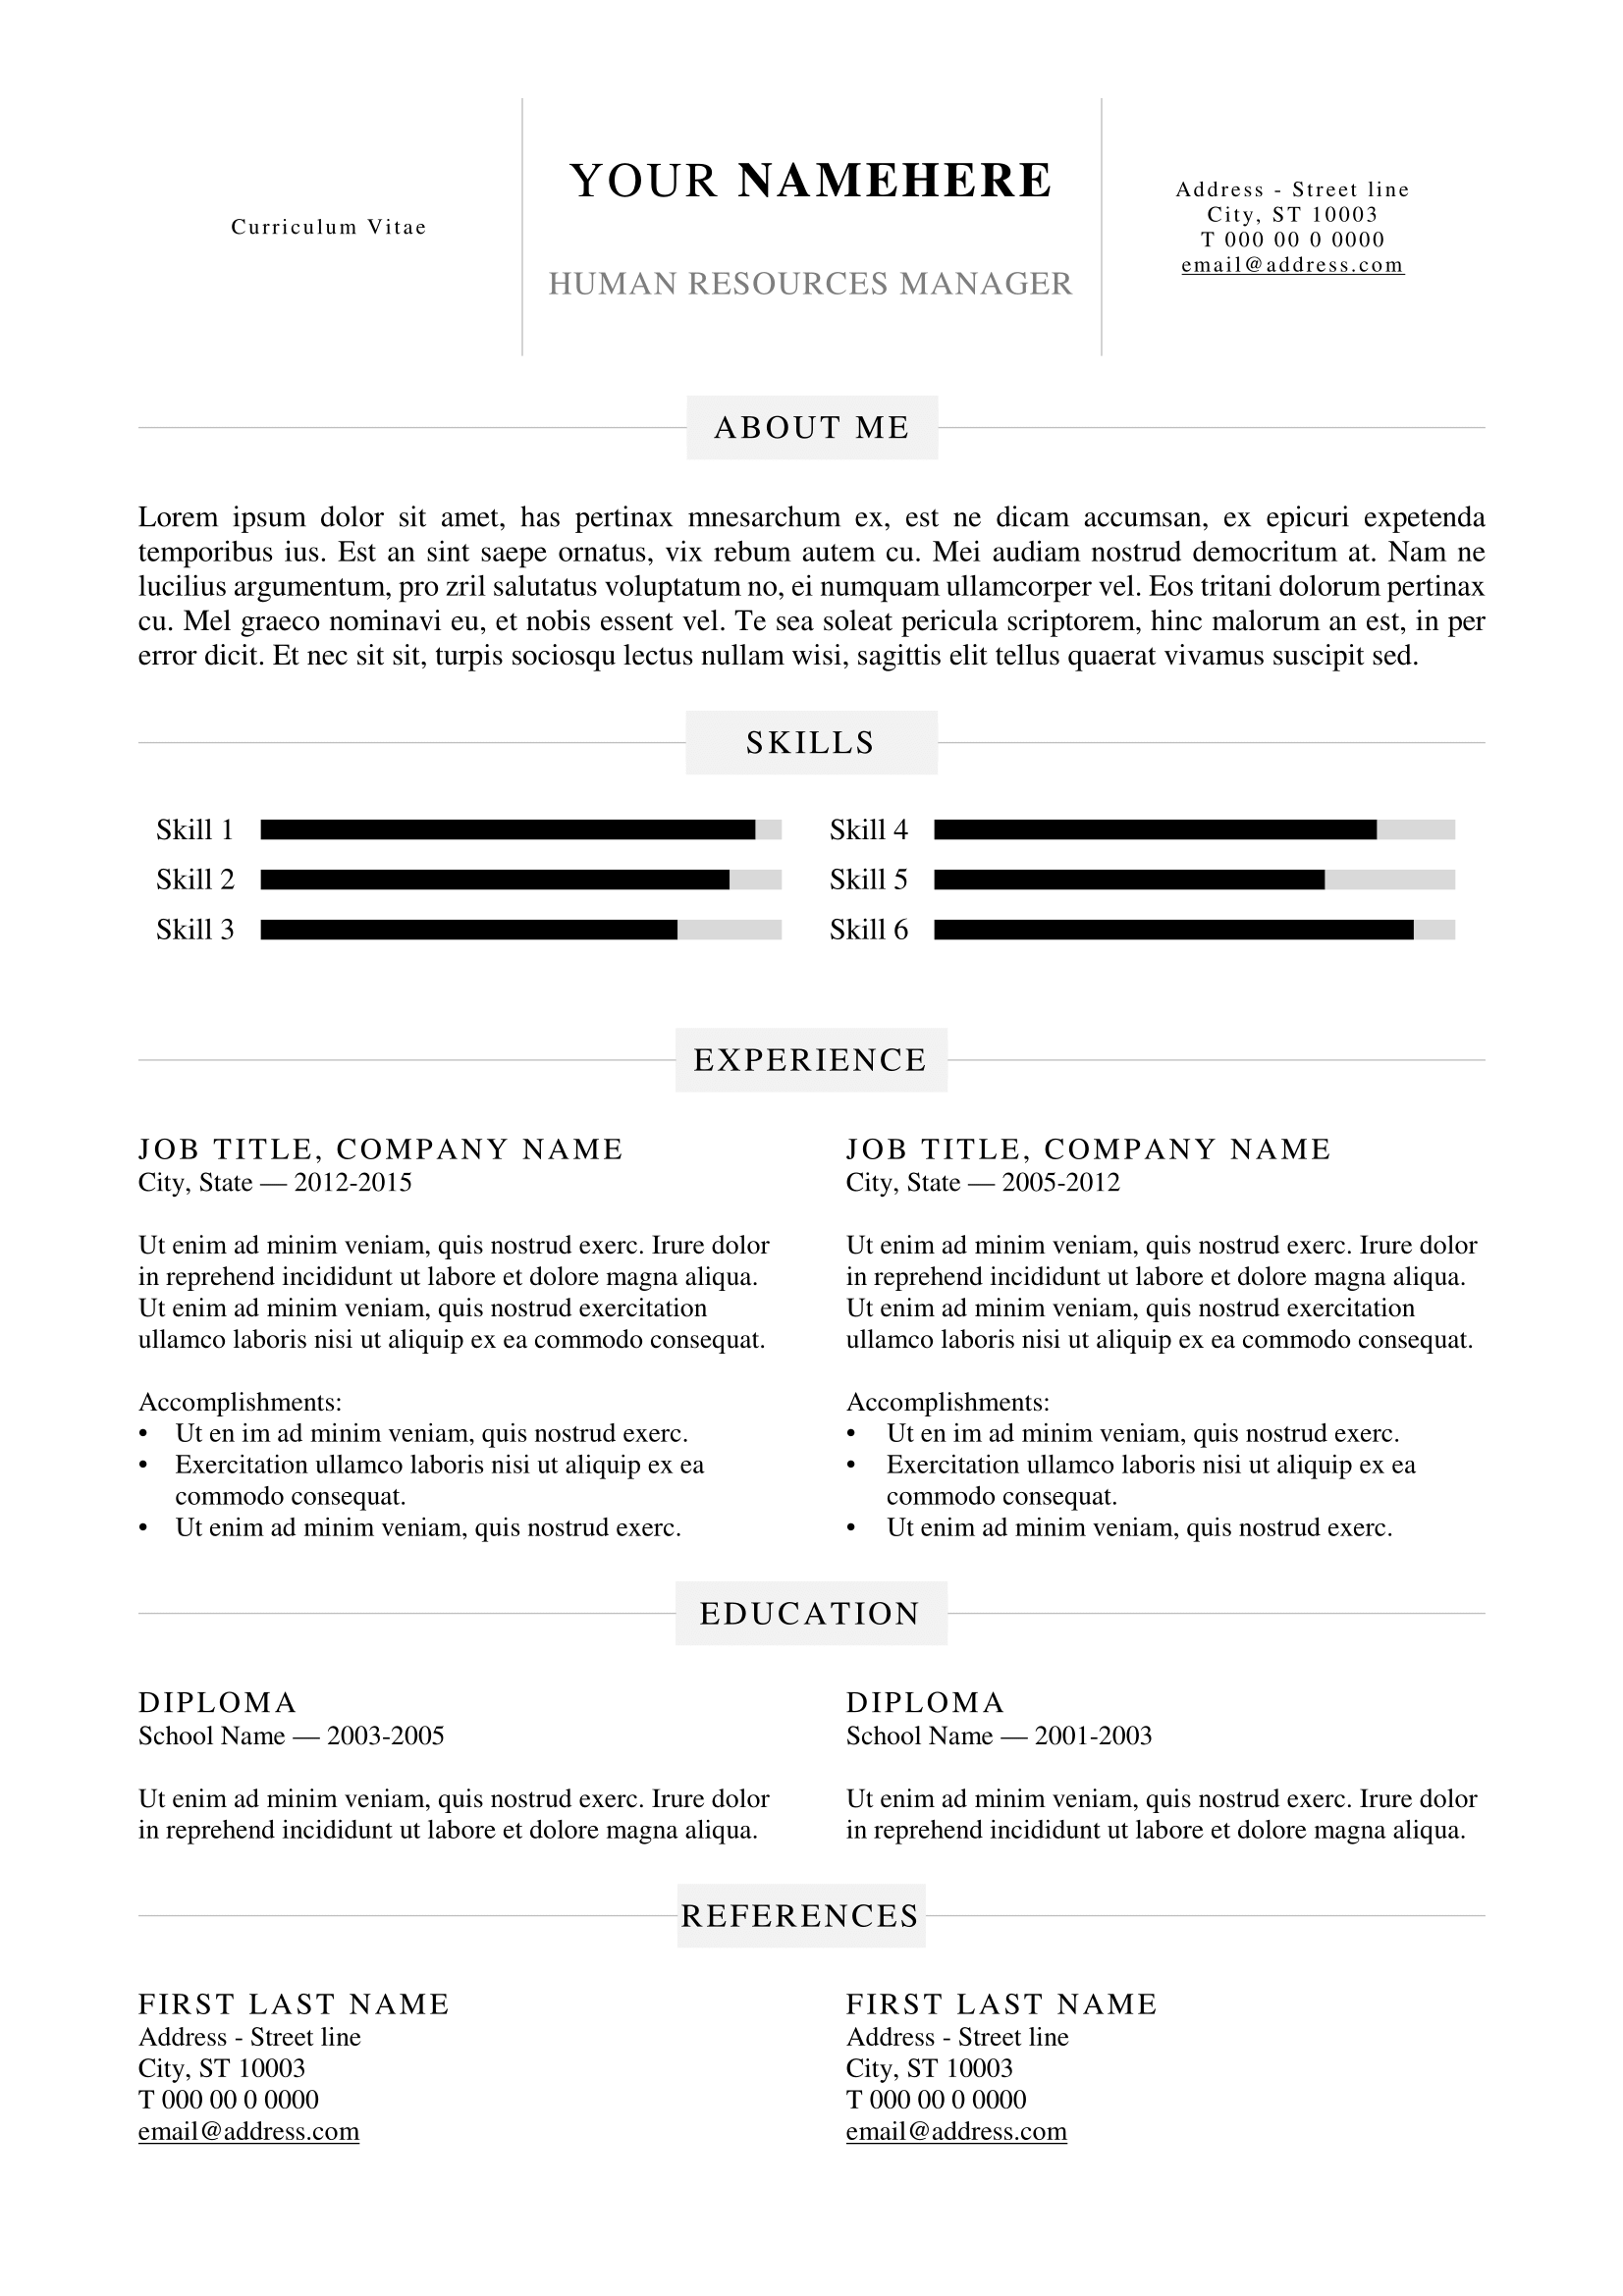 kallio simple resume word template docx kallio simple resume template for word docx